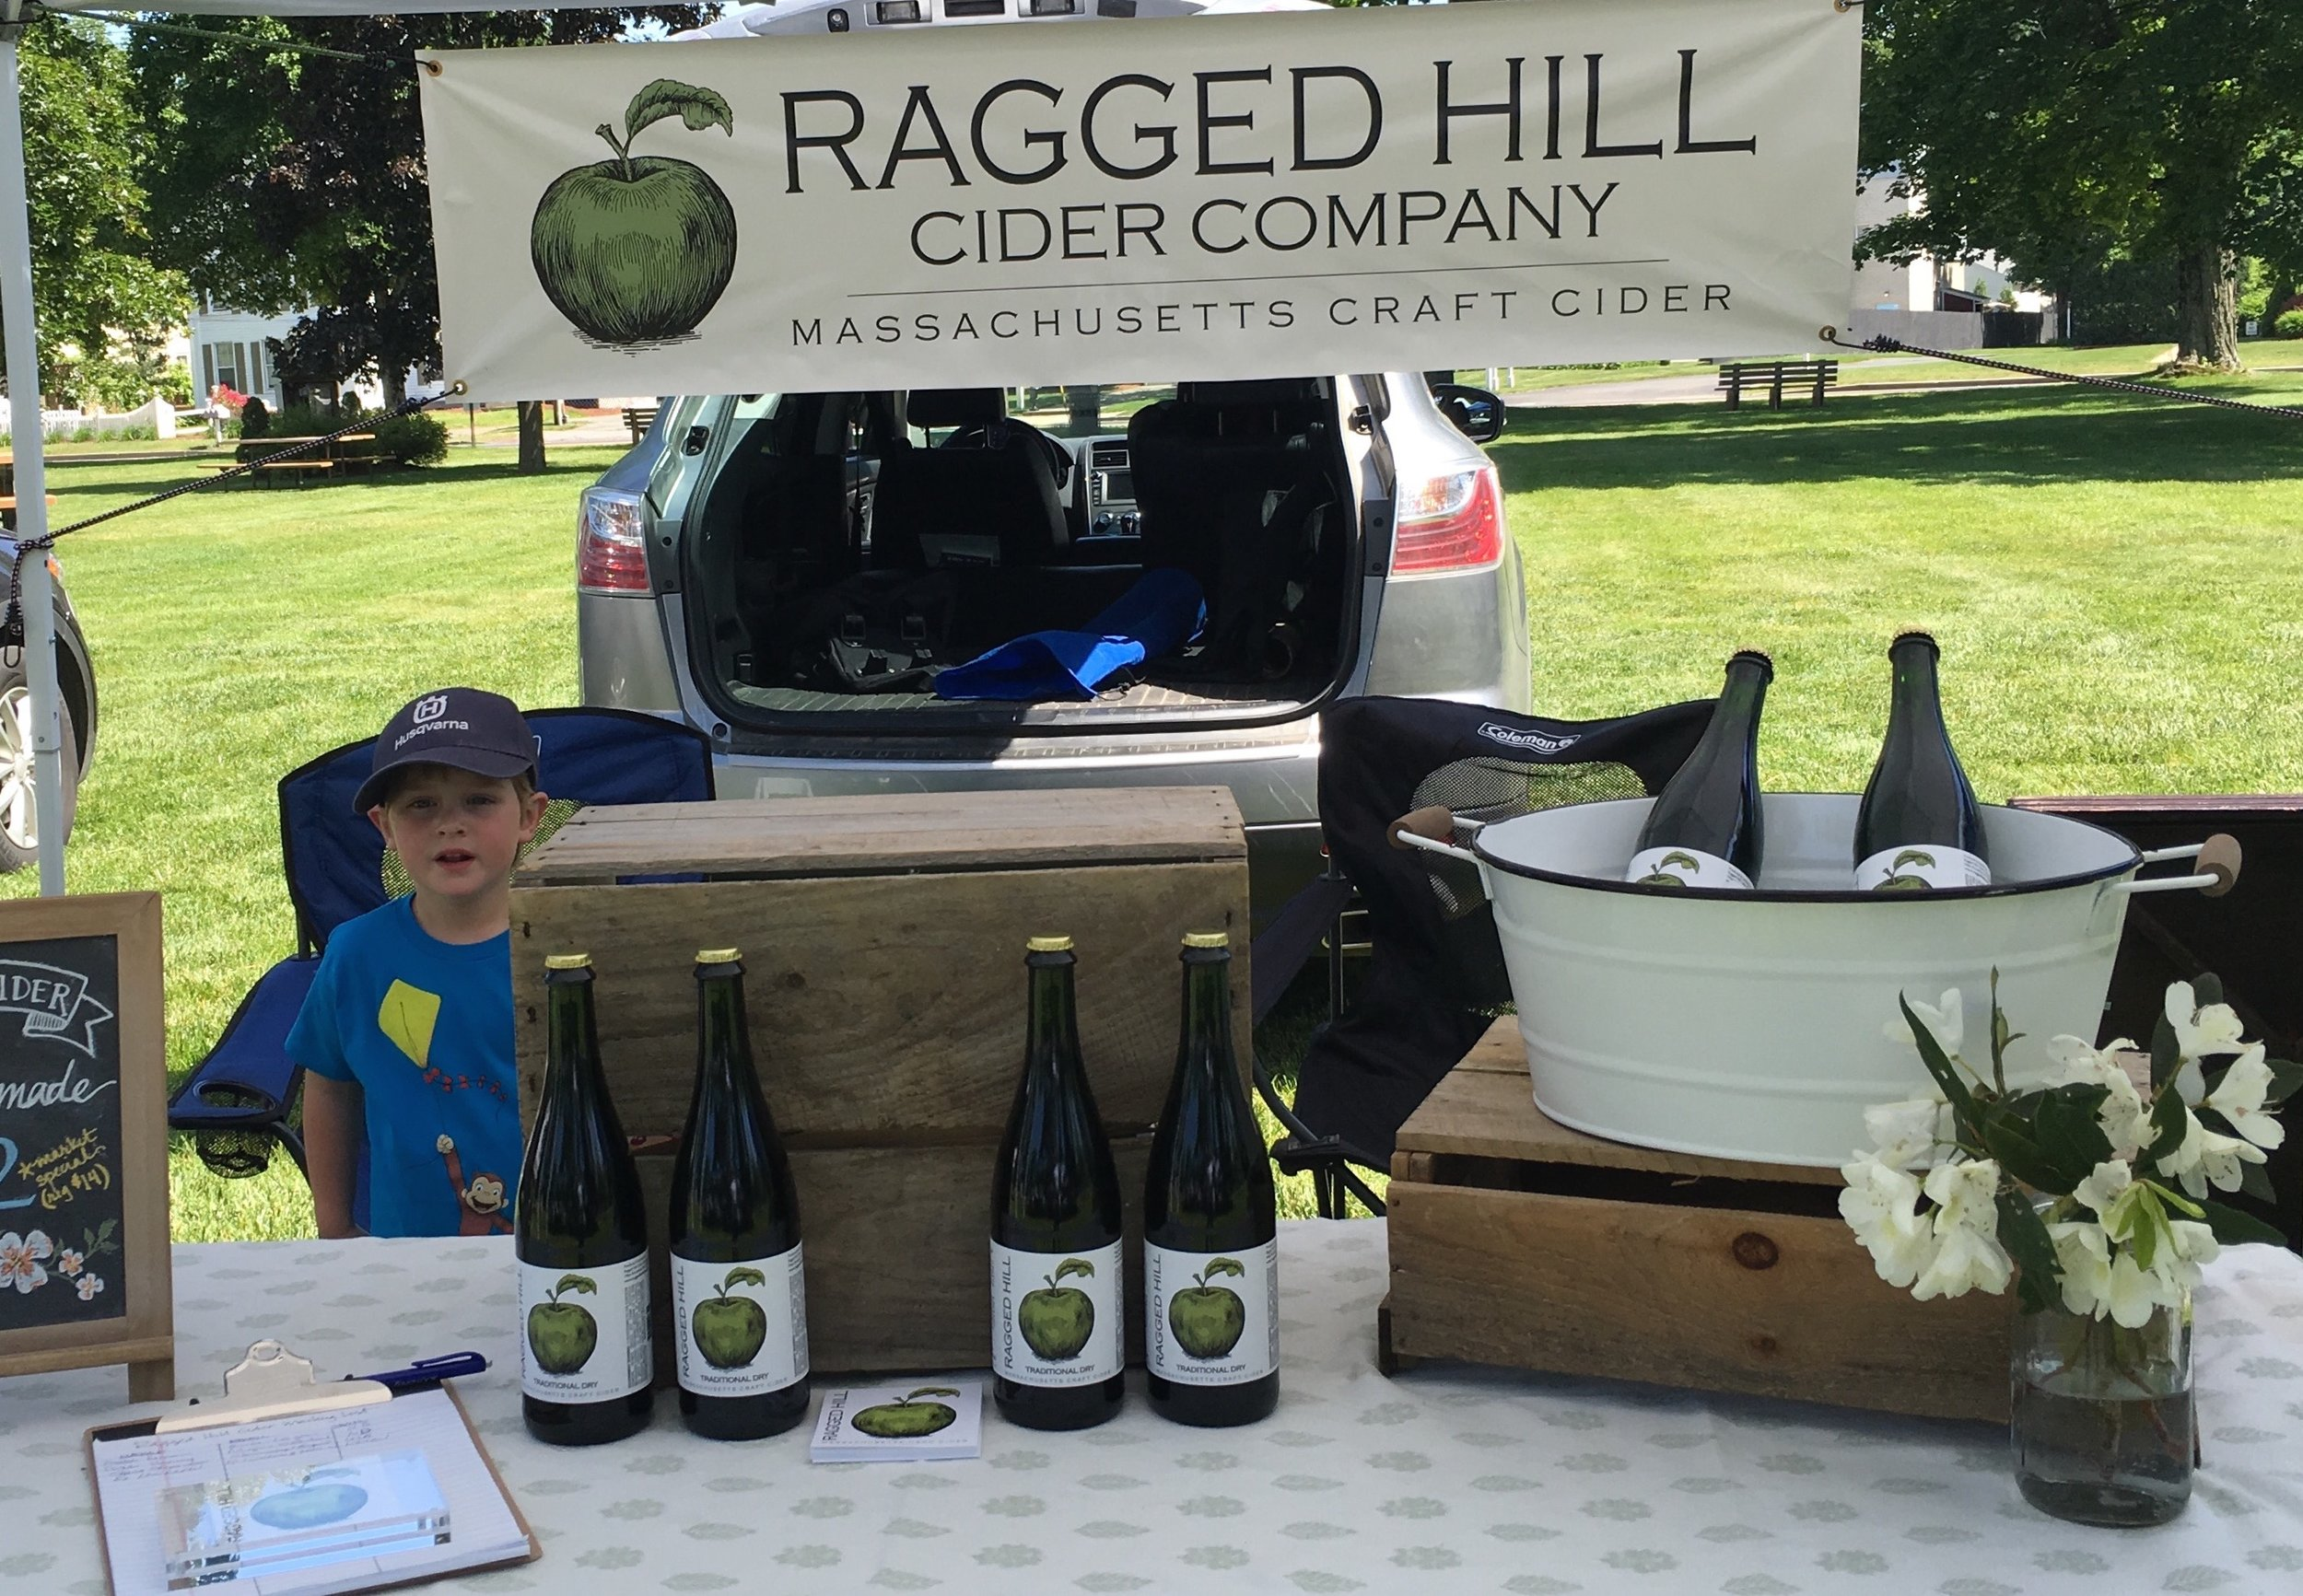 FARMERS MARKETS - West Brookfield Farmers MarketWednesdays June 6 - October 103:00 - 6:00pm, on the Town Common, Rain or ShineCanal District Farmers MarketEvery Saturday from 9:00am - 12:00pm138 Green St, WorcesterSturbridge Farmer's MarketSelect Sundays, June - October9:00 am - 1:00pm on the Sturbridge Town Common